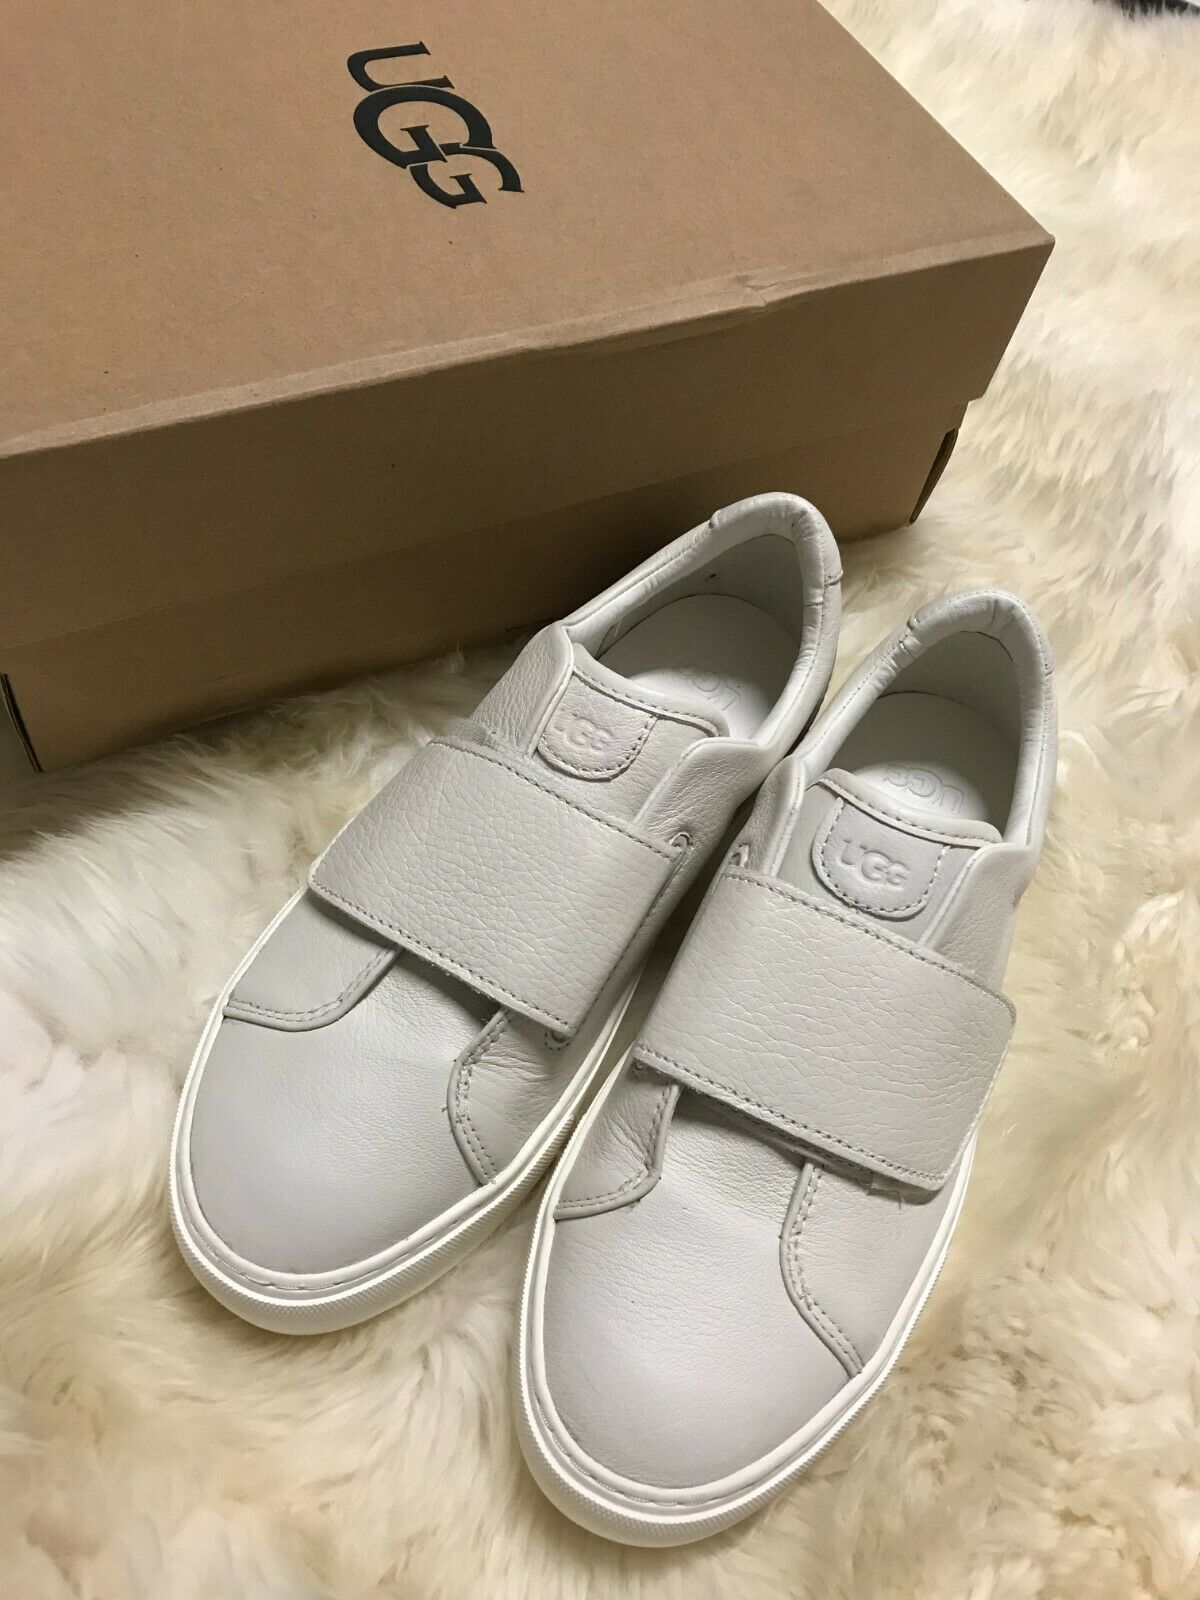 Primary image for UGG NERI LEATHER TRAINER WOMENS WHITE LEATHER CASUAL FASHION SHOES 1103692 US6.5